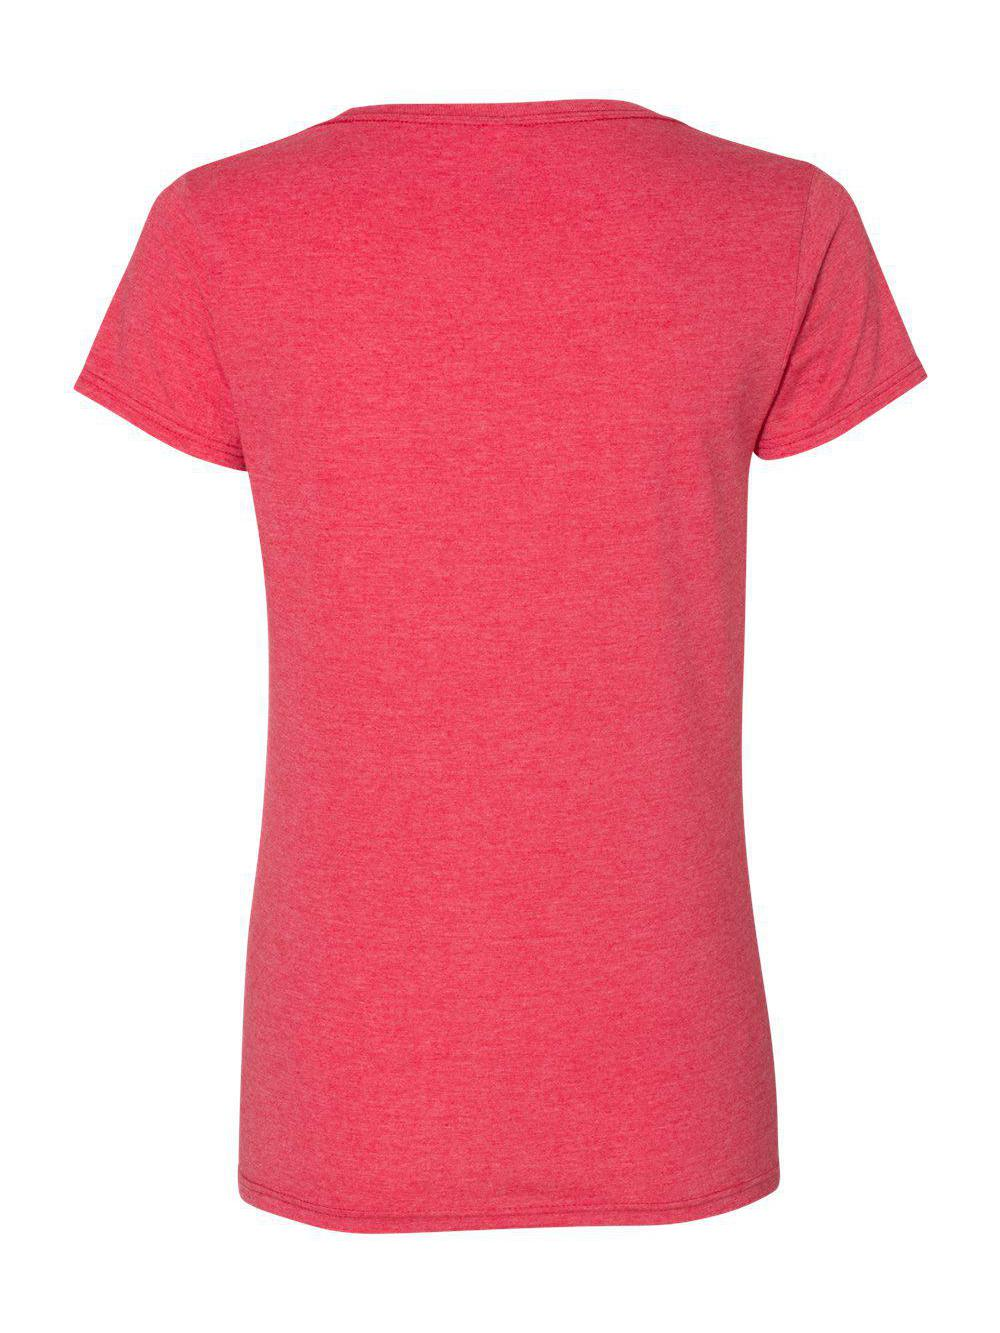 Gildan-Softstyle-Women-039-s-Deep-Scoopneck-T-Shirt-64550L thumbnail 31